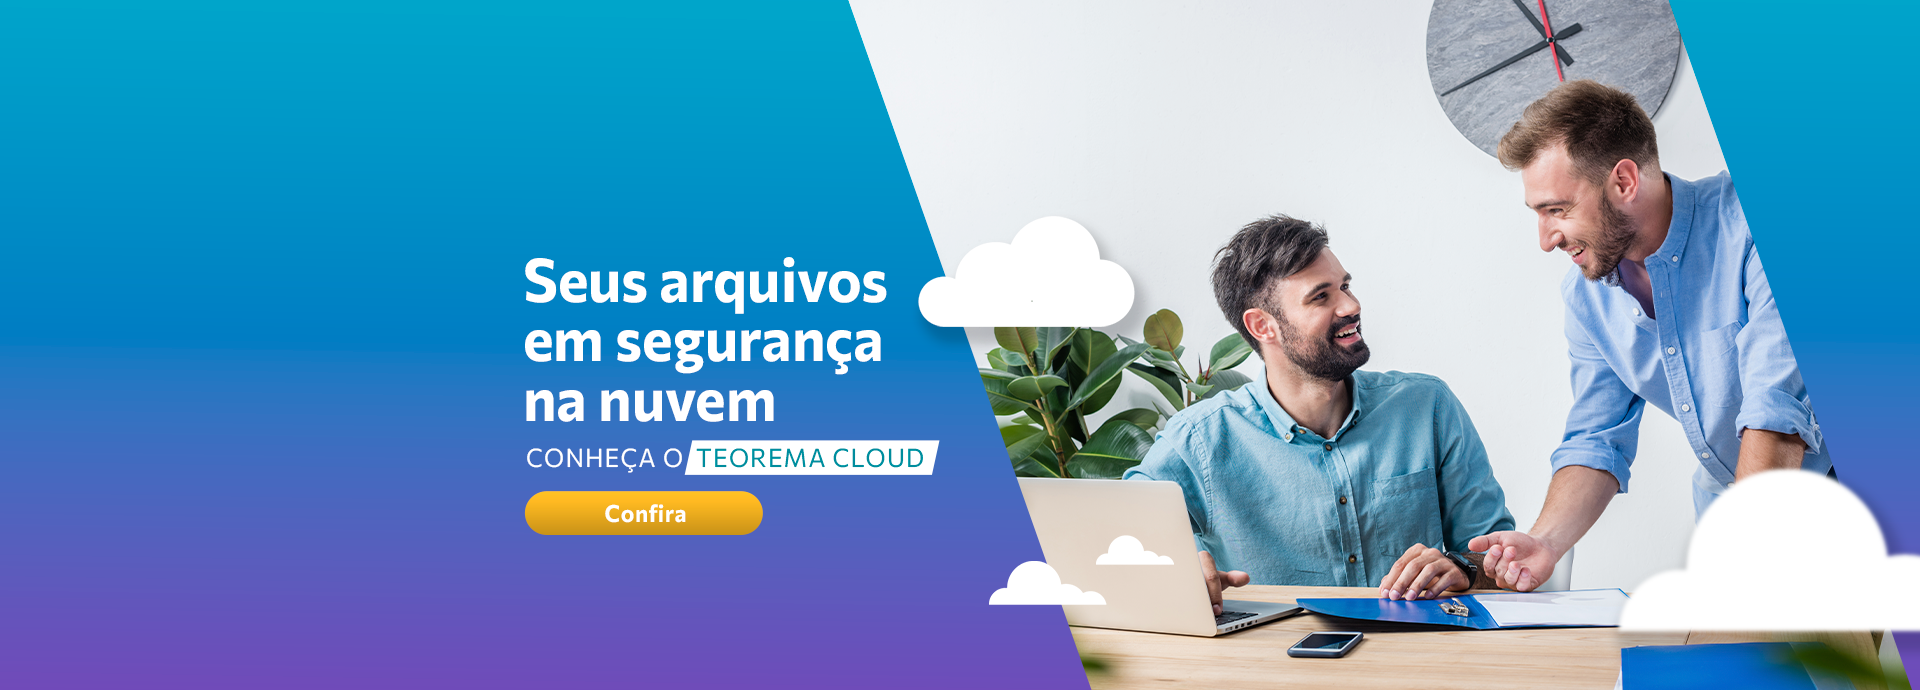 https://teorema.inf.br/solucoes/teorema-cloud/